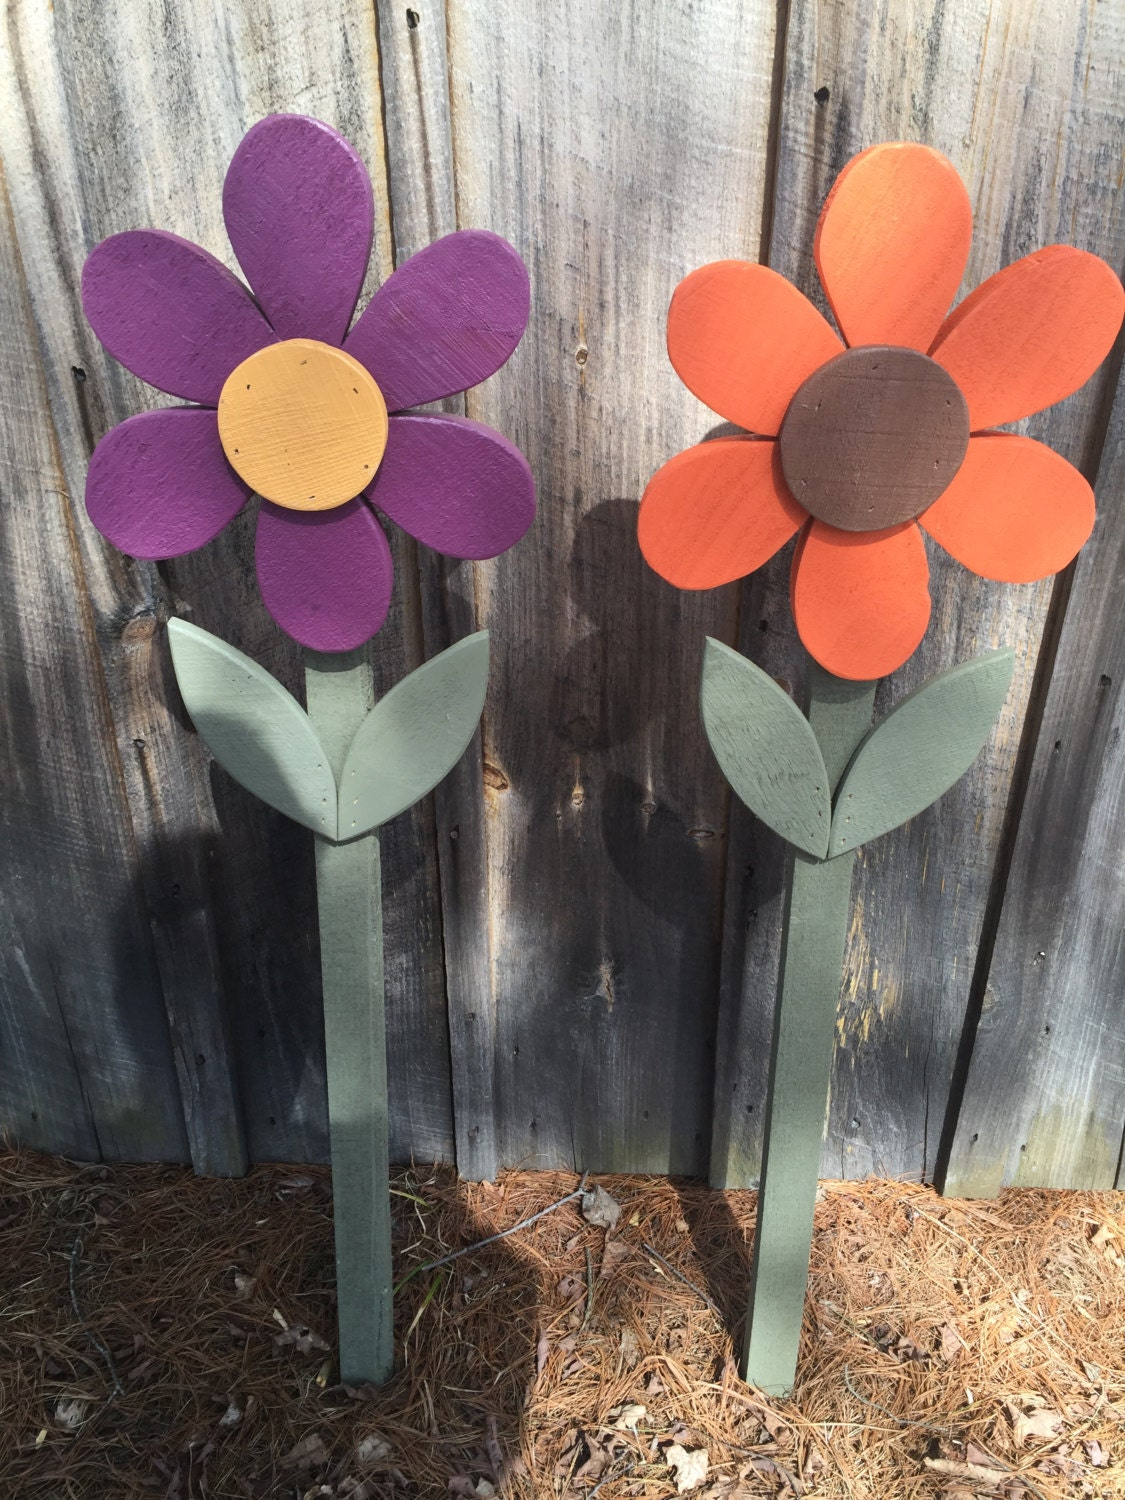 Flowers spring summer fall yard decorations wood flower on for Spring yard decorations